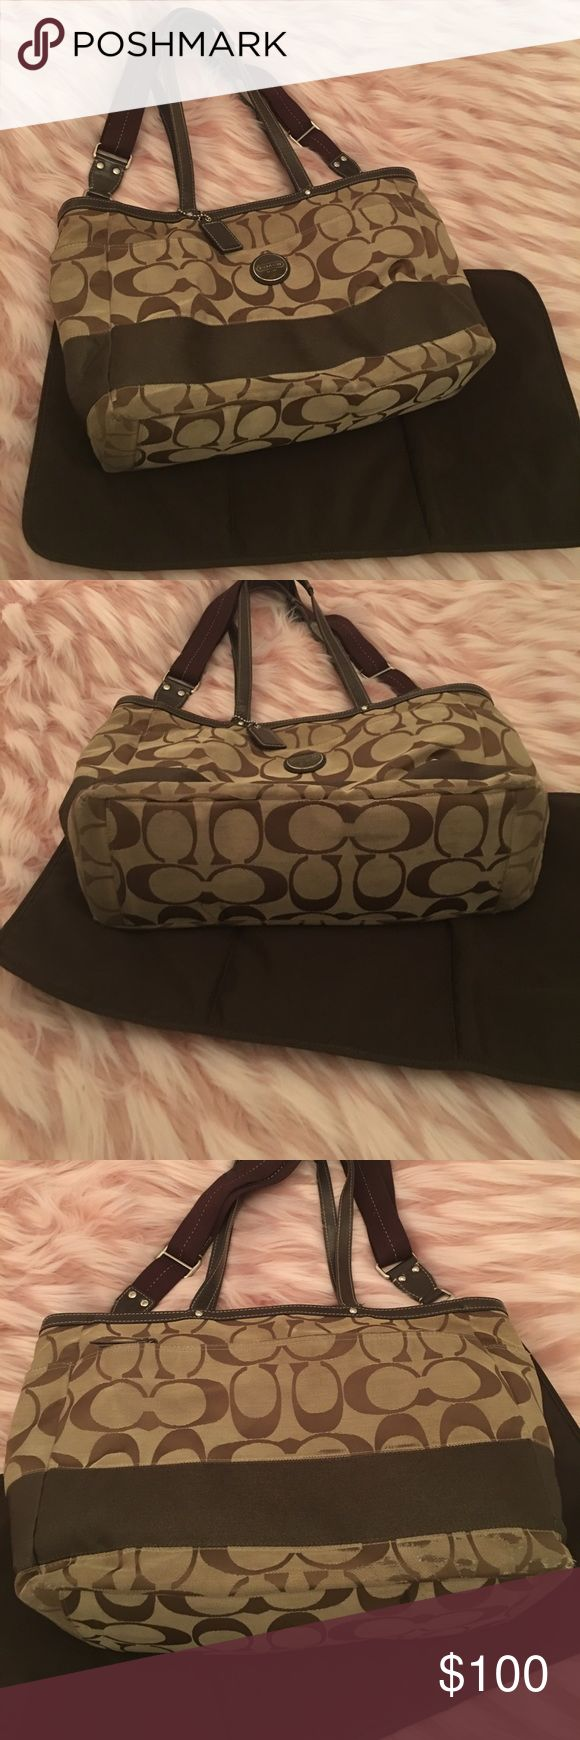 Coach Diaper Bag In good used condition. Comes with changing pad. Coach Bags Baby Bags